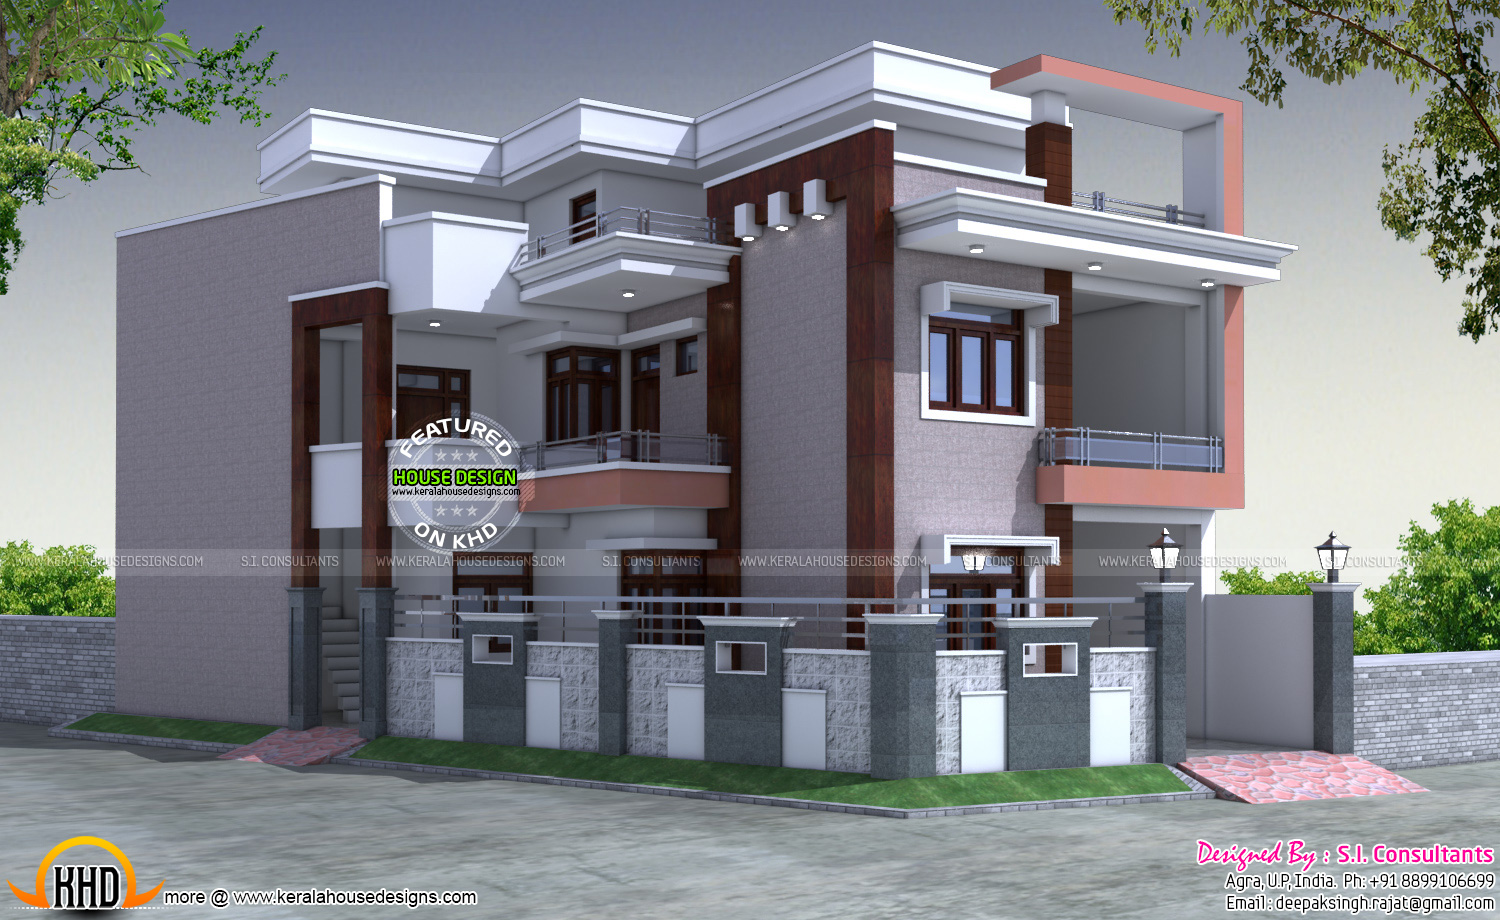 Wonderful 30x60 house floor plans gallery best for Indian house outlook design